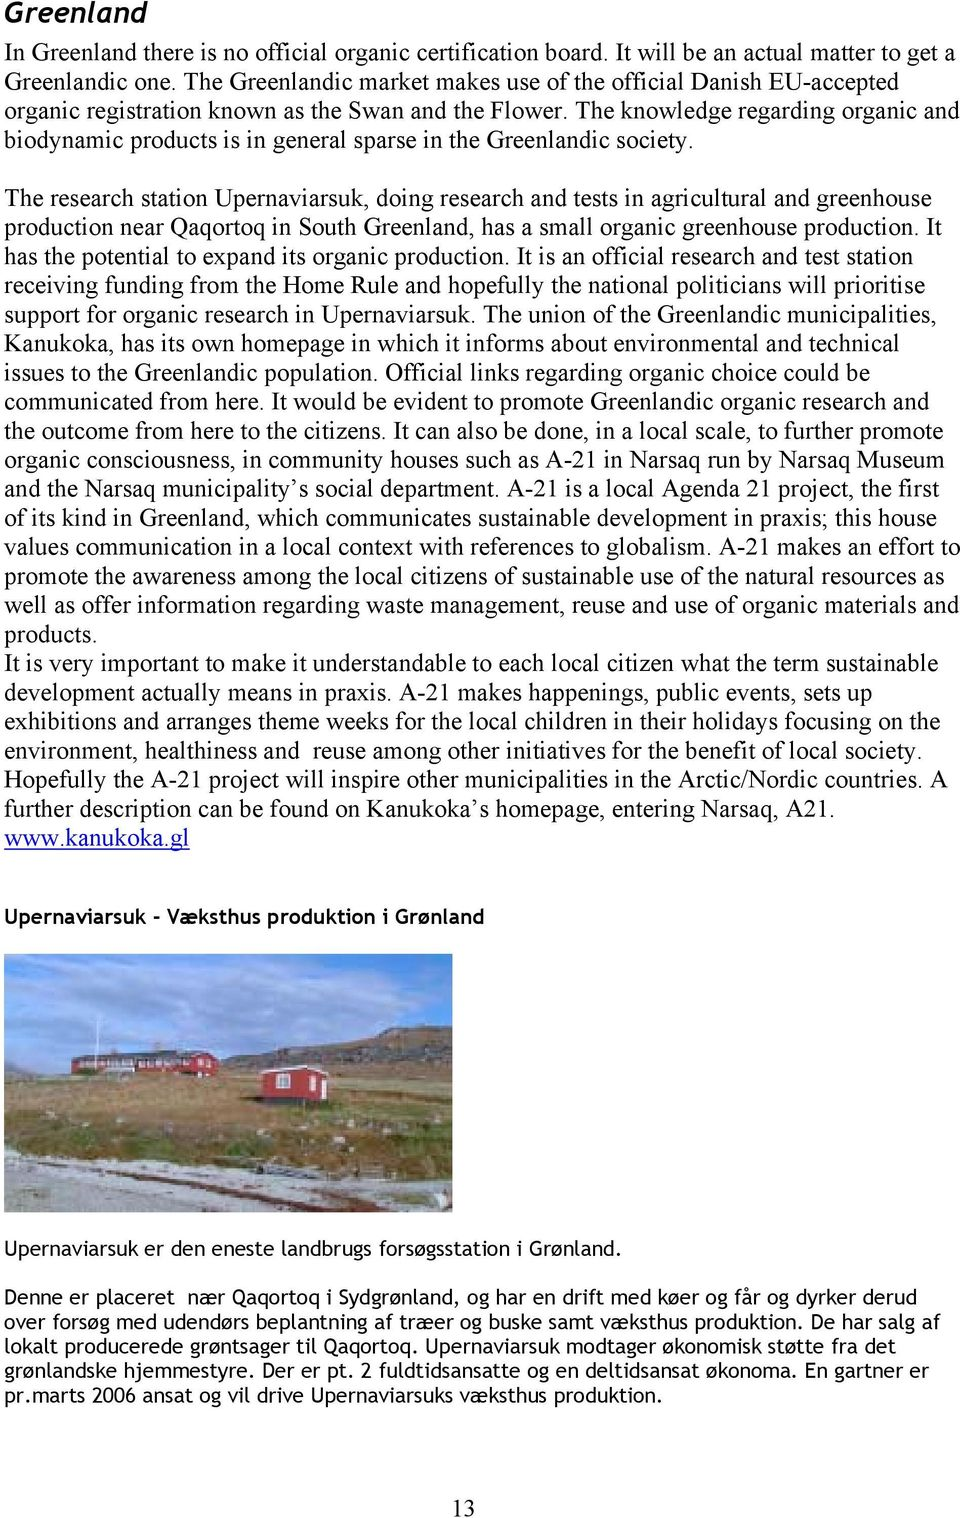 The knowledge regarding organic and biodynamic products is in general sparse in the Greenlandic society.